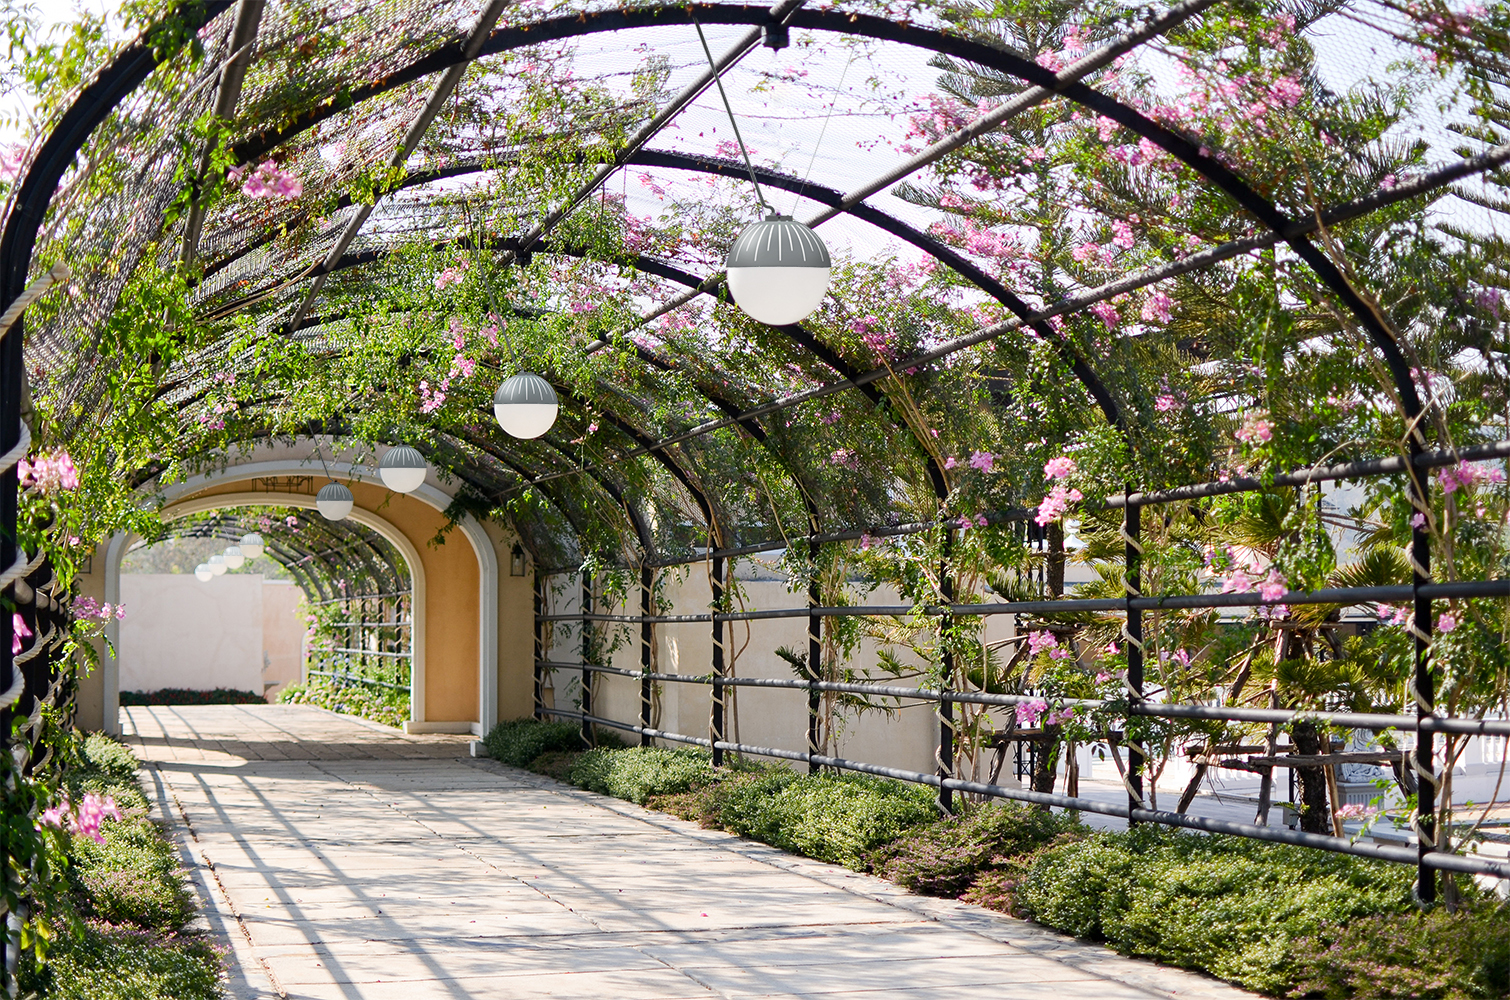 Zume outdoor light fixtures illuminate a vine-covered outdoor archway with purple flowers.